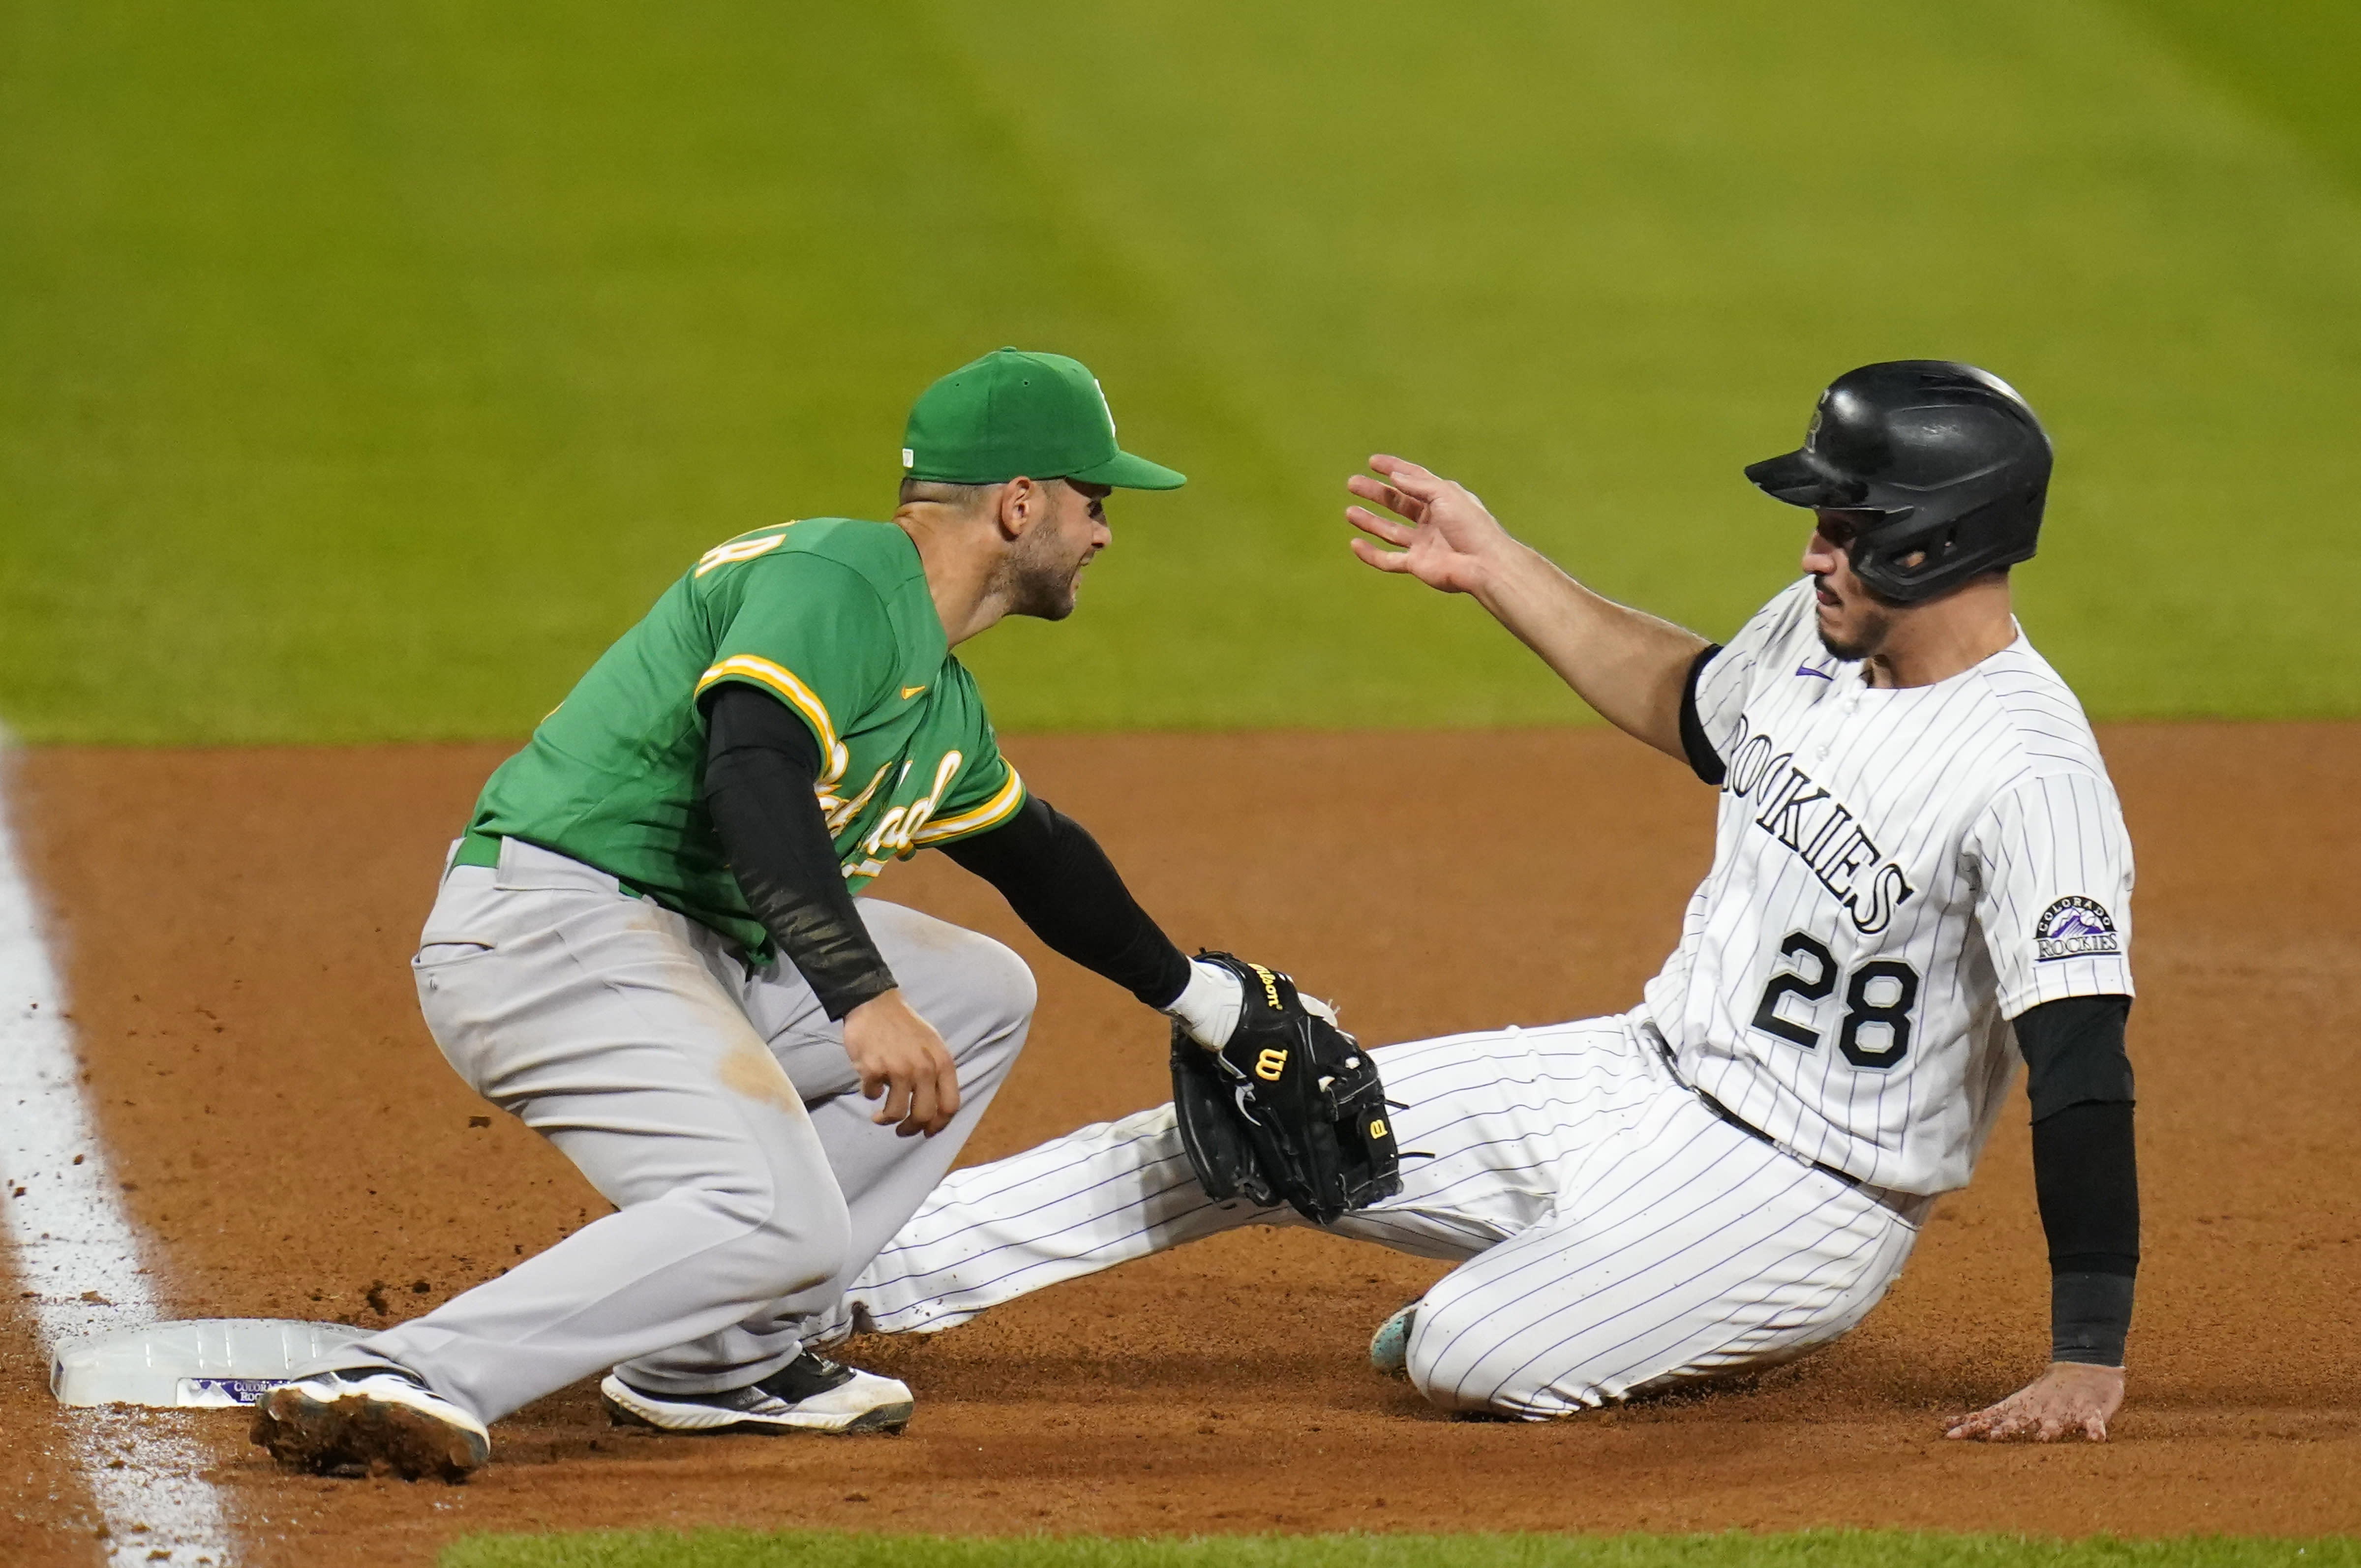 Oakland Athletics third baseman Tommy La Stella tags out Colorado Rockies' Nolan Arenado during the eighth inning of a baseball game, Tuesday, Sept. 15, 2020, in Denver. (AP Photo/Jack Dempsey)